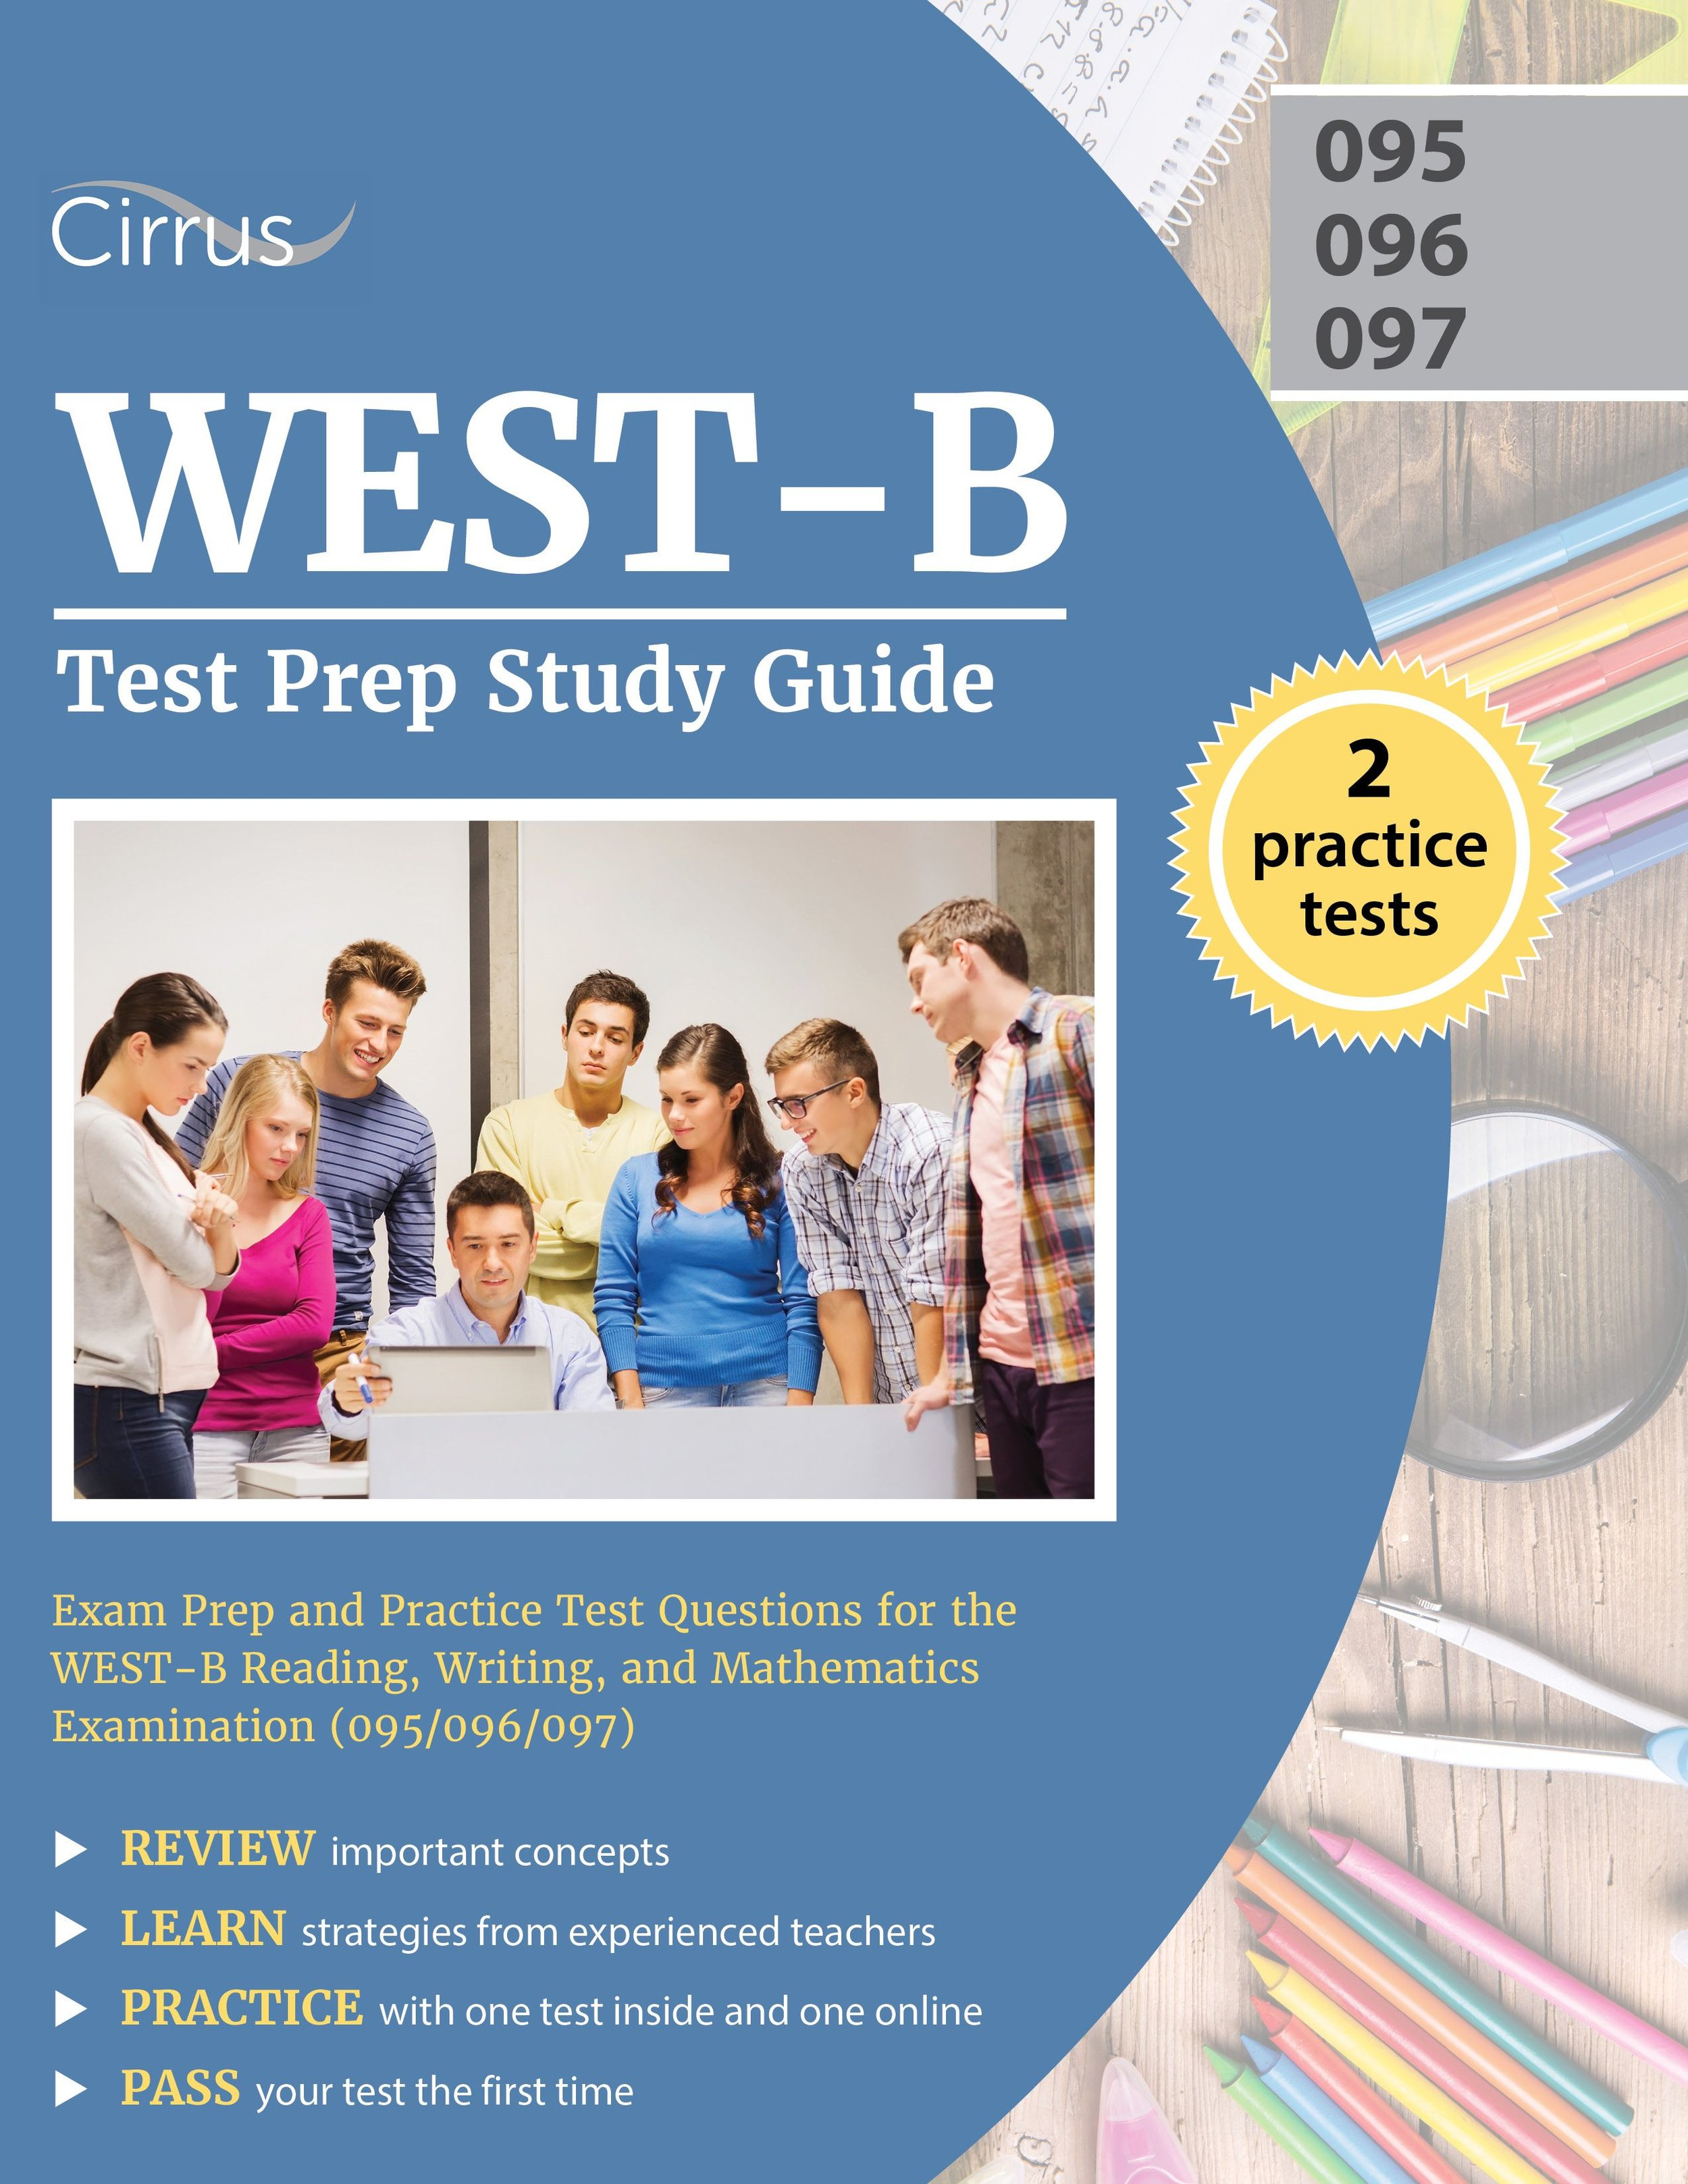 WEST-B Reading, Writing, and Math Test Prep Study Guide